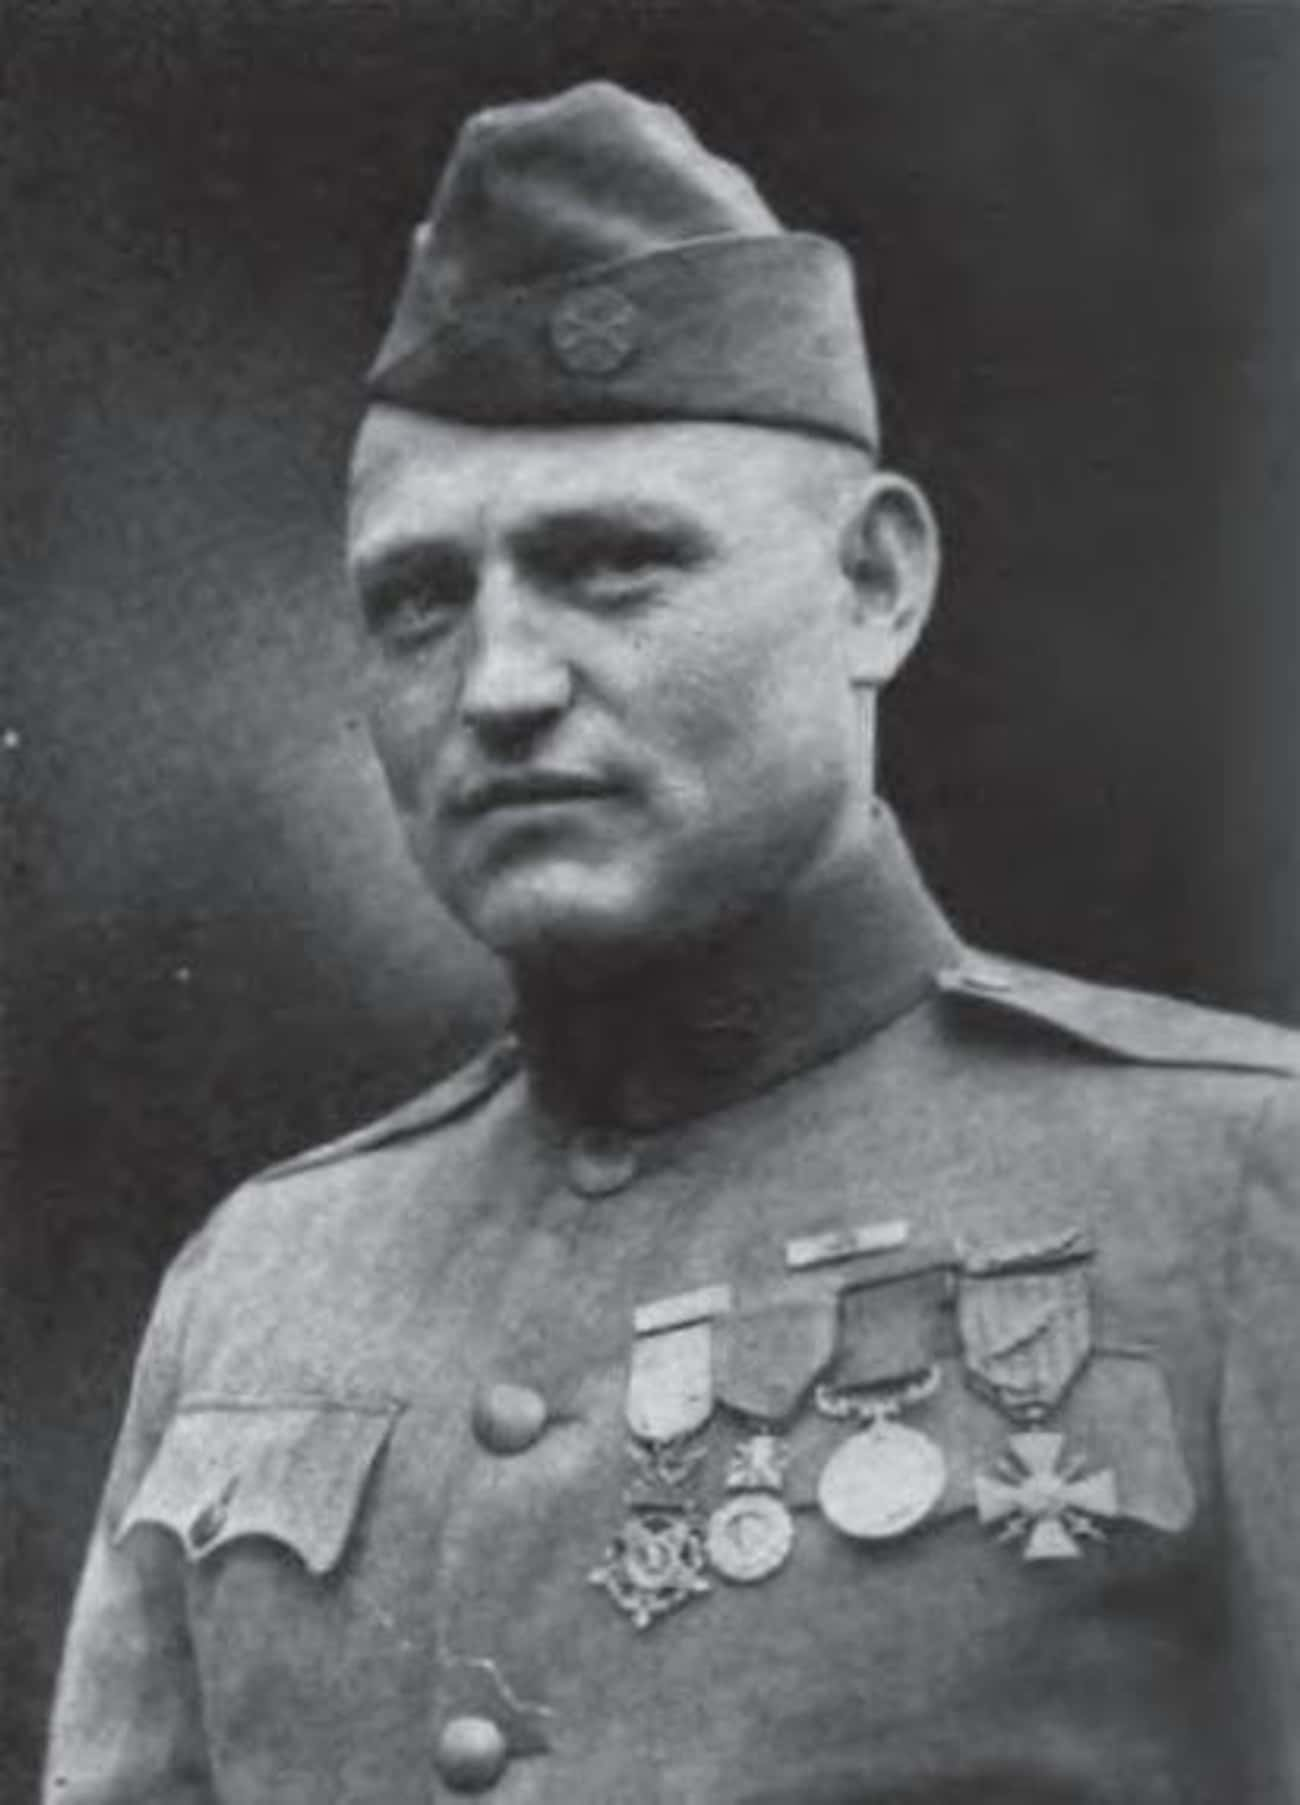 Jake Allex - Singlehandedly Charged an Enemy Machine Gun Position with a Rifle